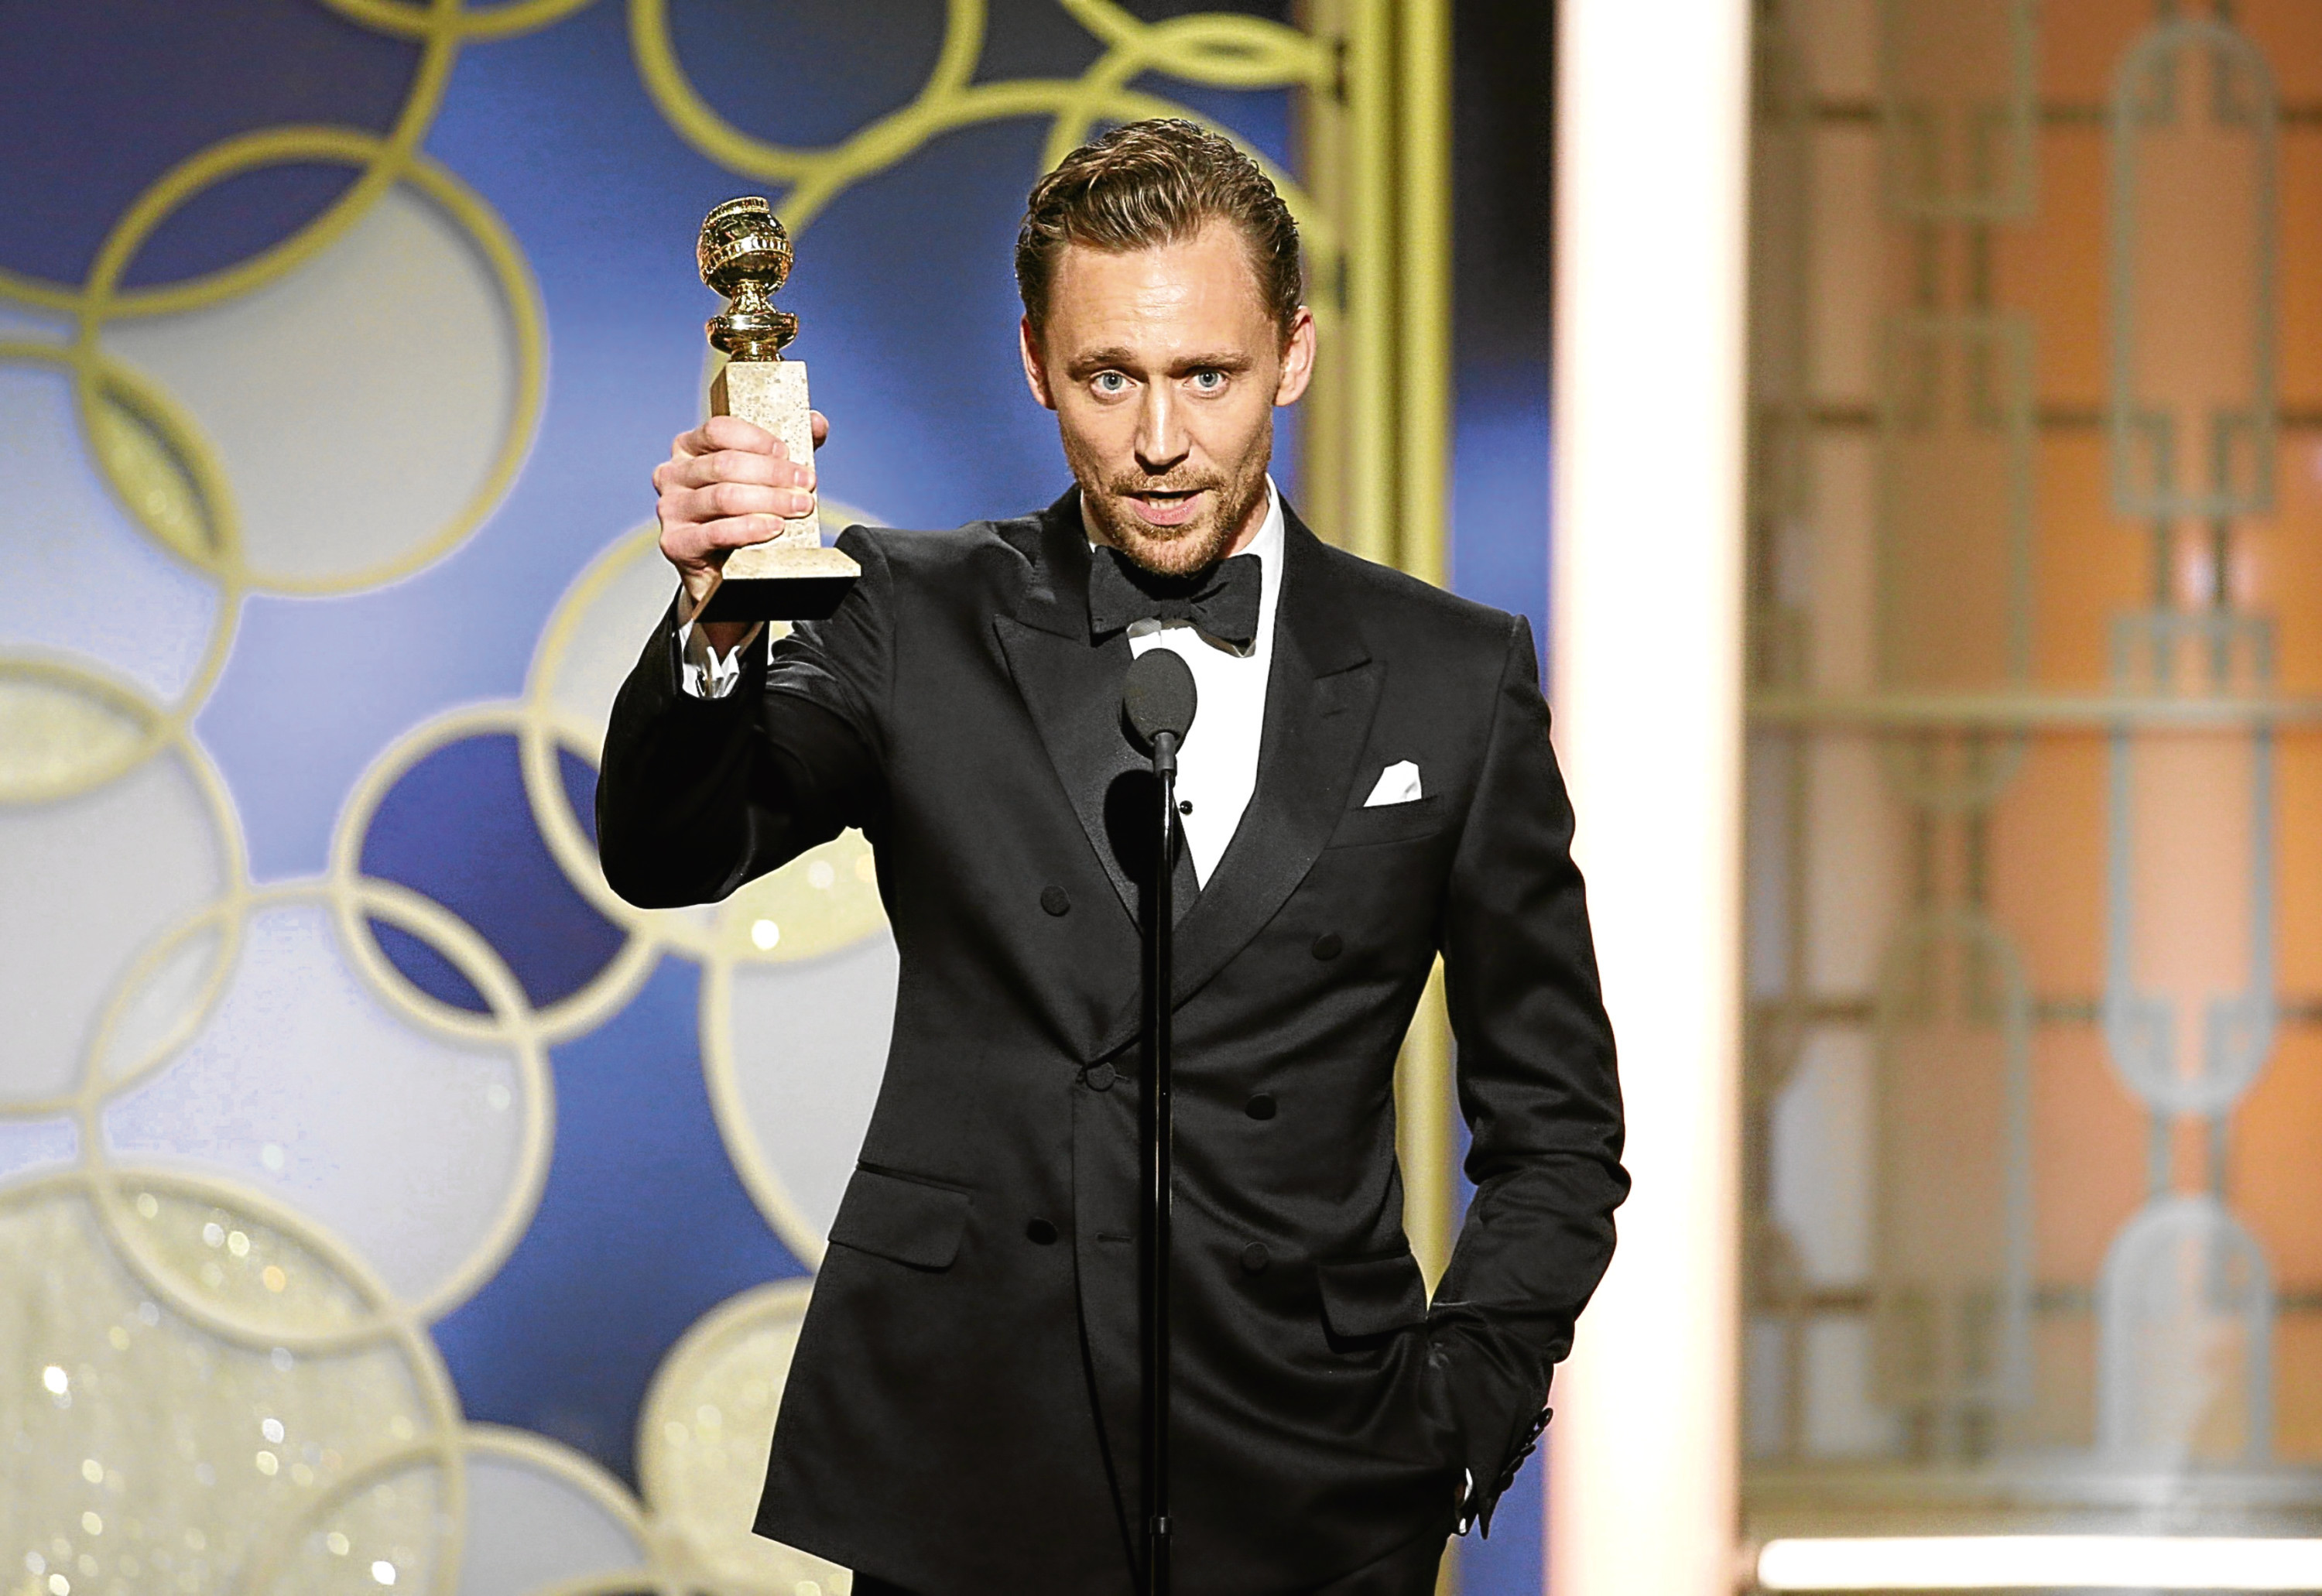 Tom Hiddleston accepts the award for Best Actor - Limited Series or Motion Picture (Paul Drinkwater/NBCUniversal via Getty Images)